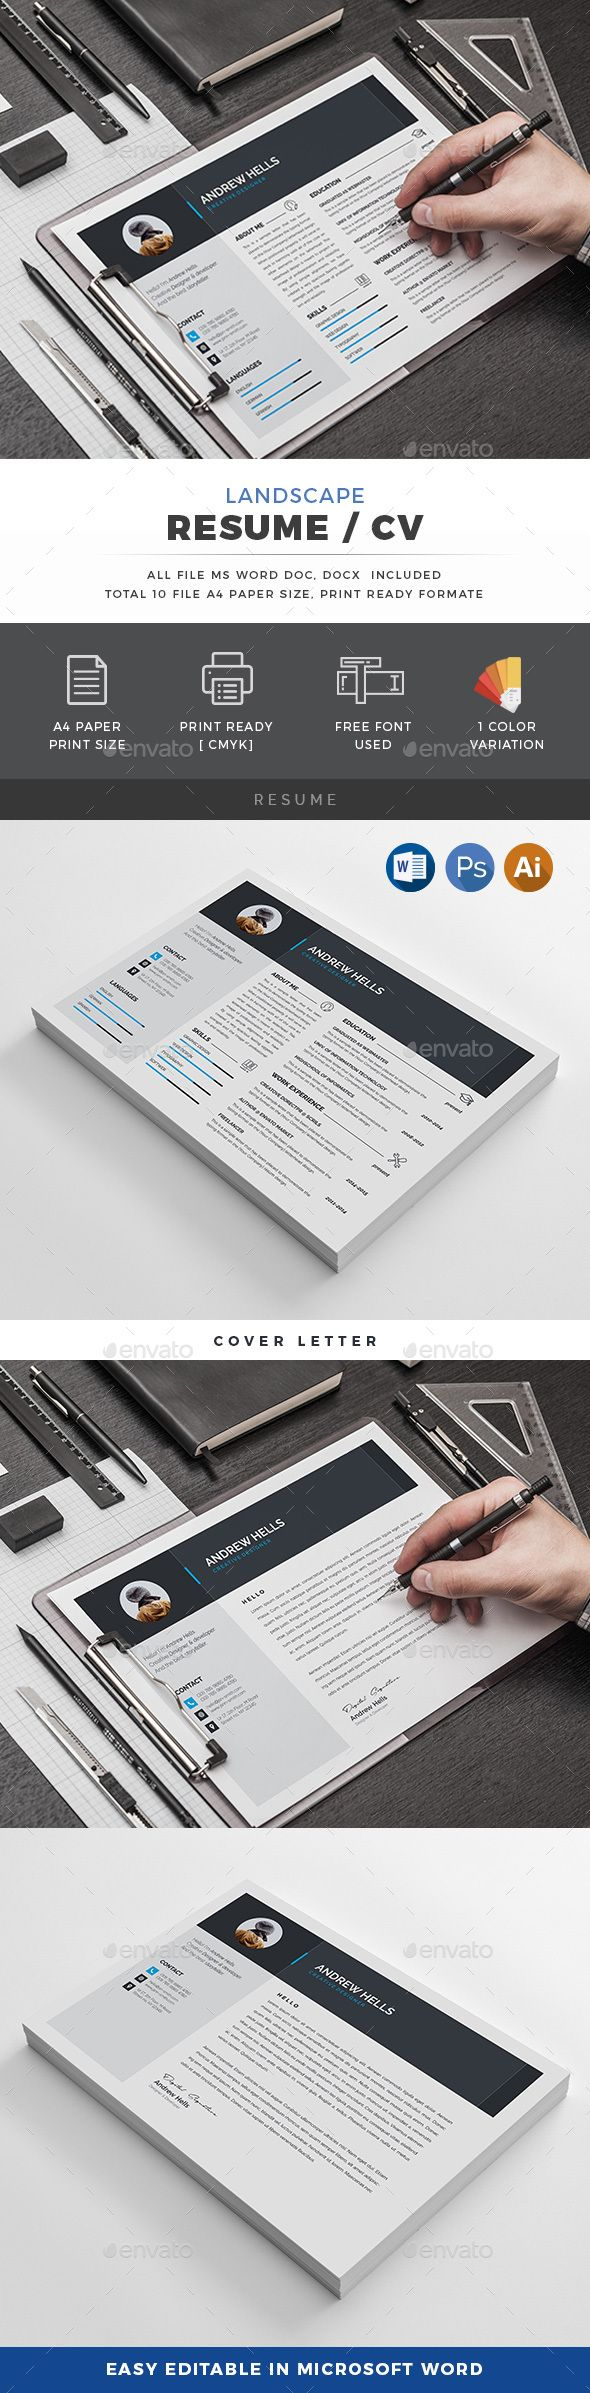 161 best -=Resume\'s=- images on Pinterest | Resume, Resume templates ...